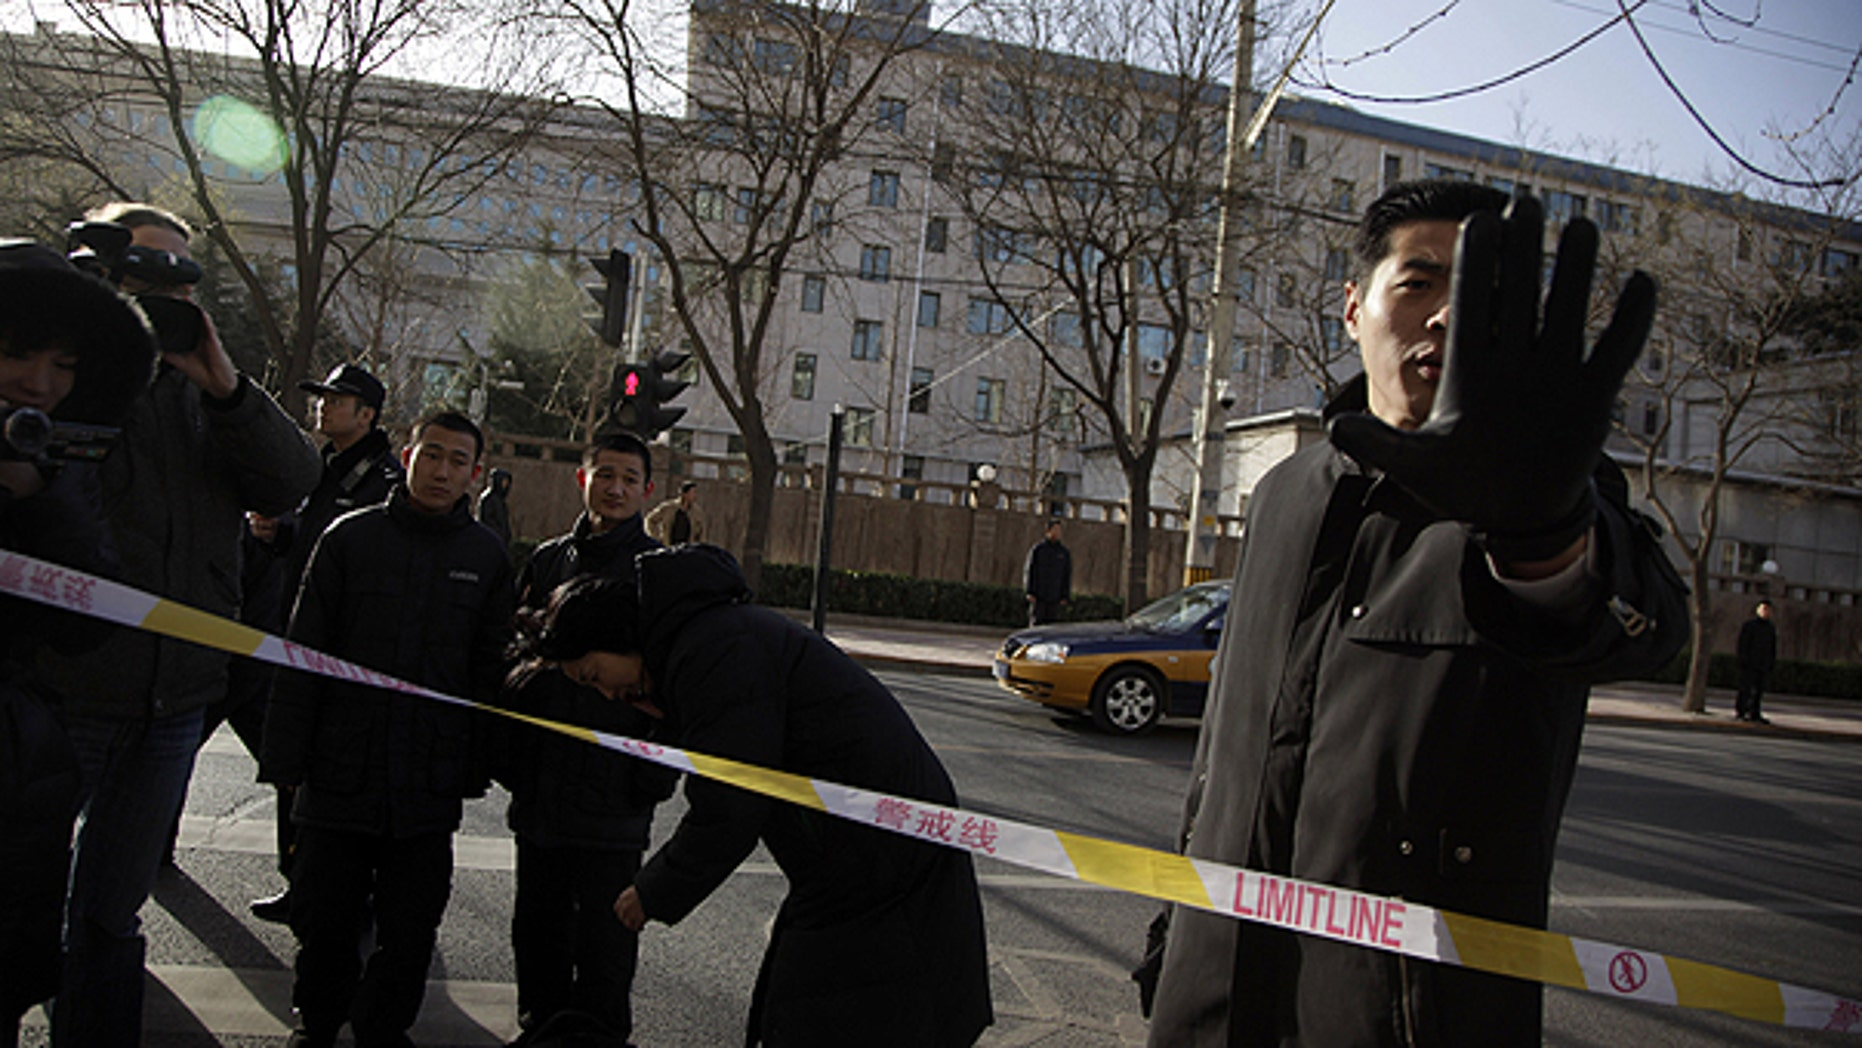 Dec. 10: A plain clothes security person blocks a photographer in an area cordoned off for journalists to work outside the residential compound where Liu Xia, the wife of Nobel Peace Prize winner Liu Xiaobo lives in Beijing, China.